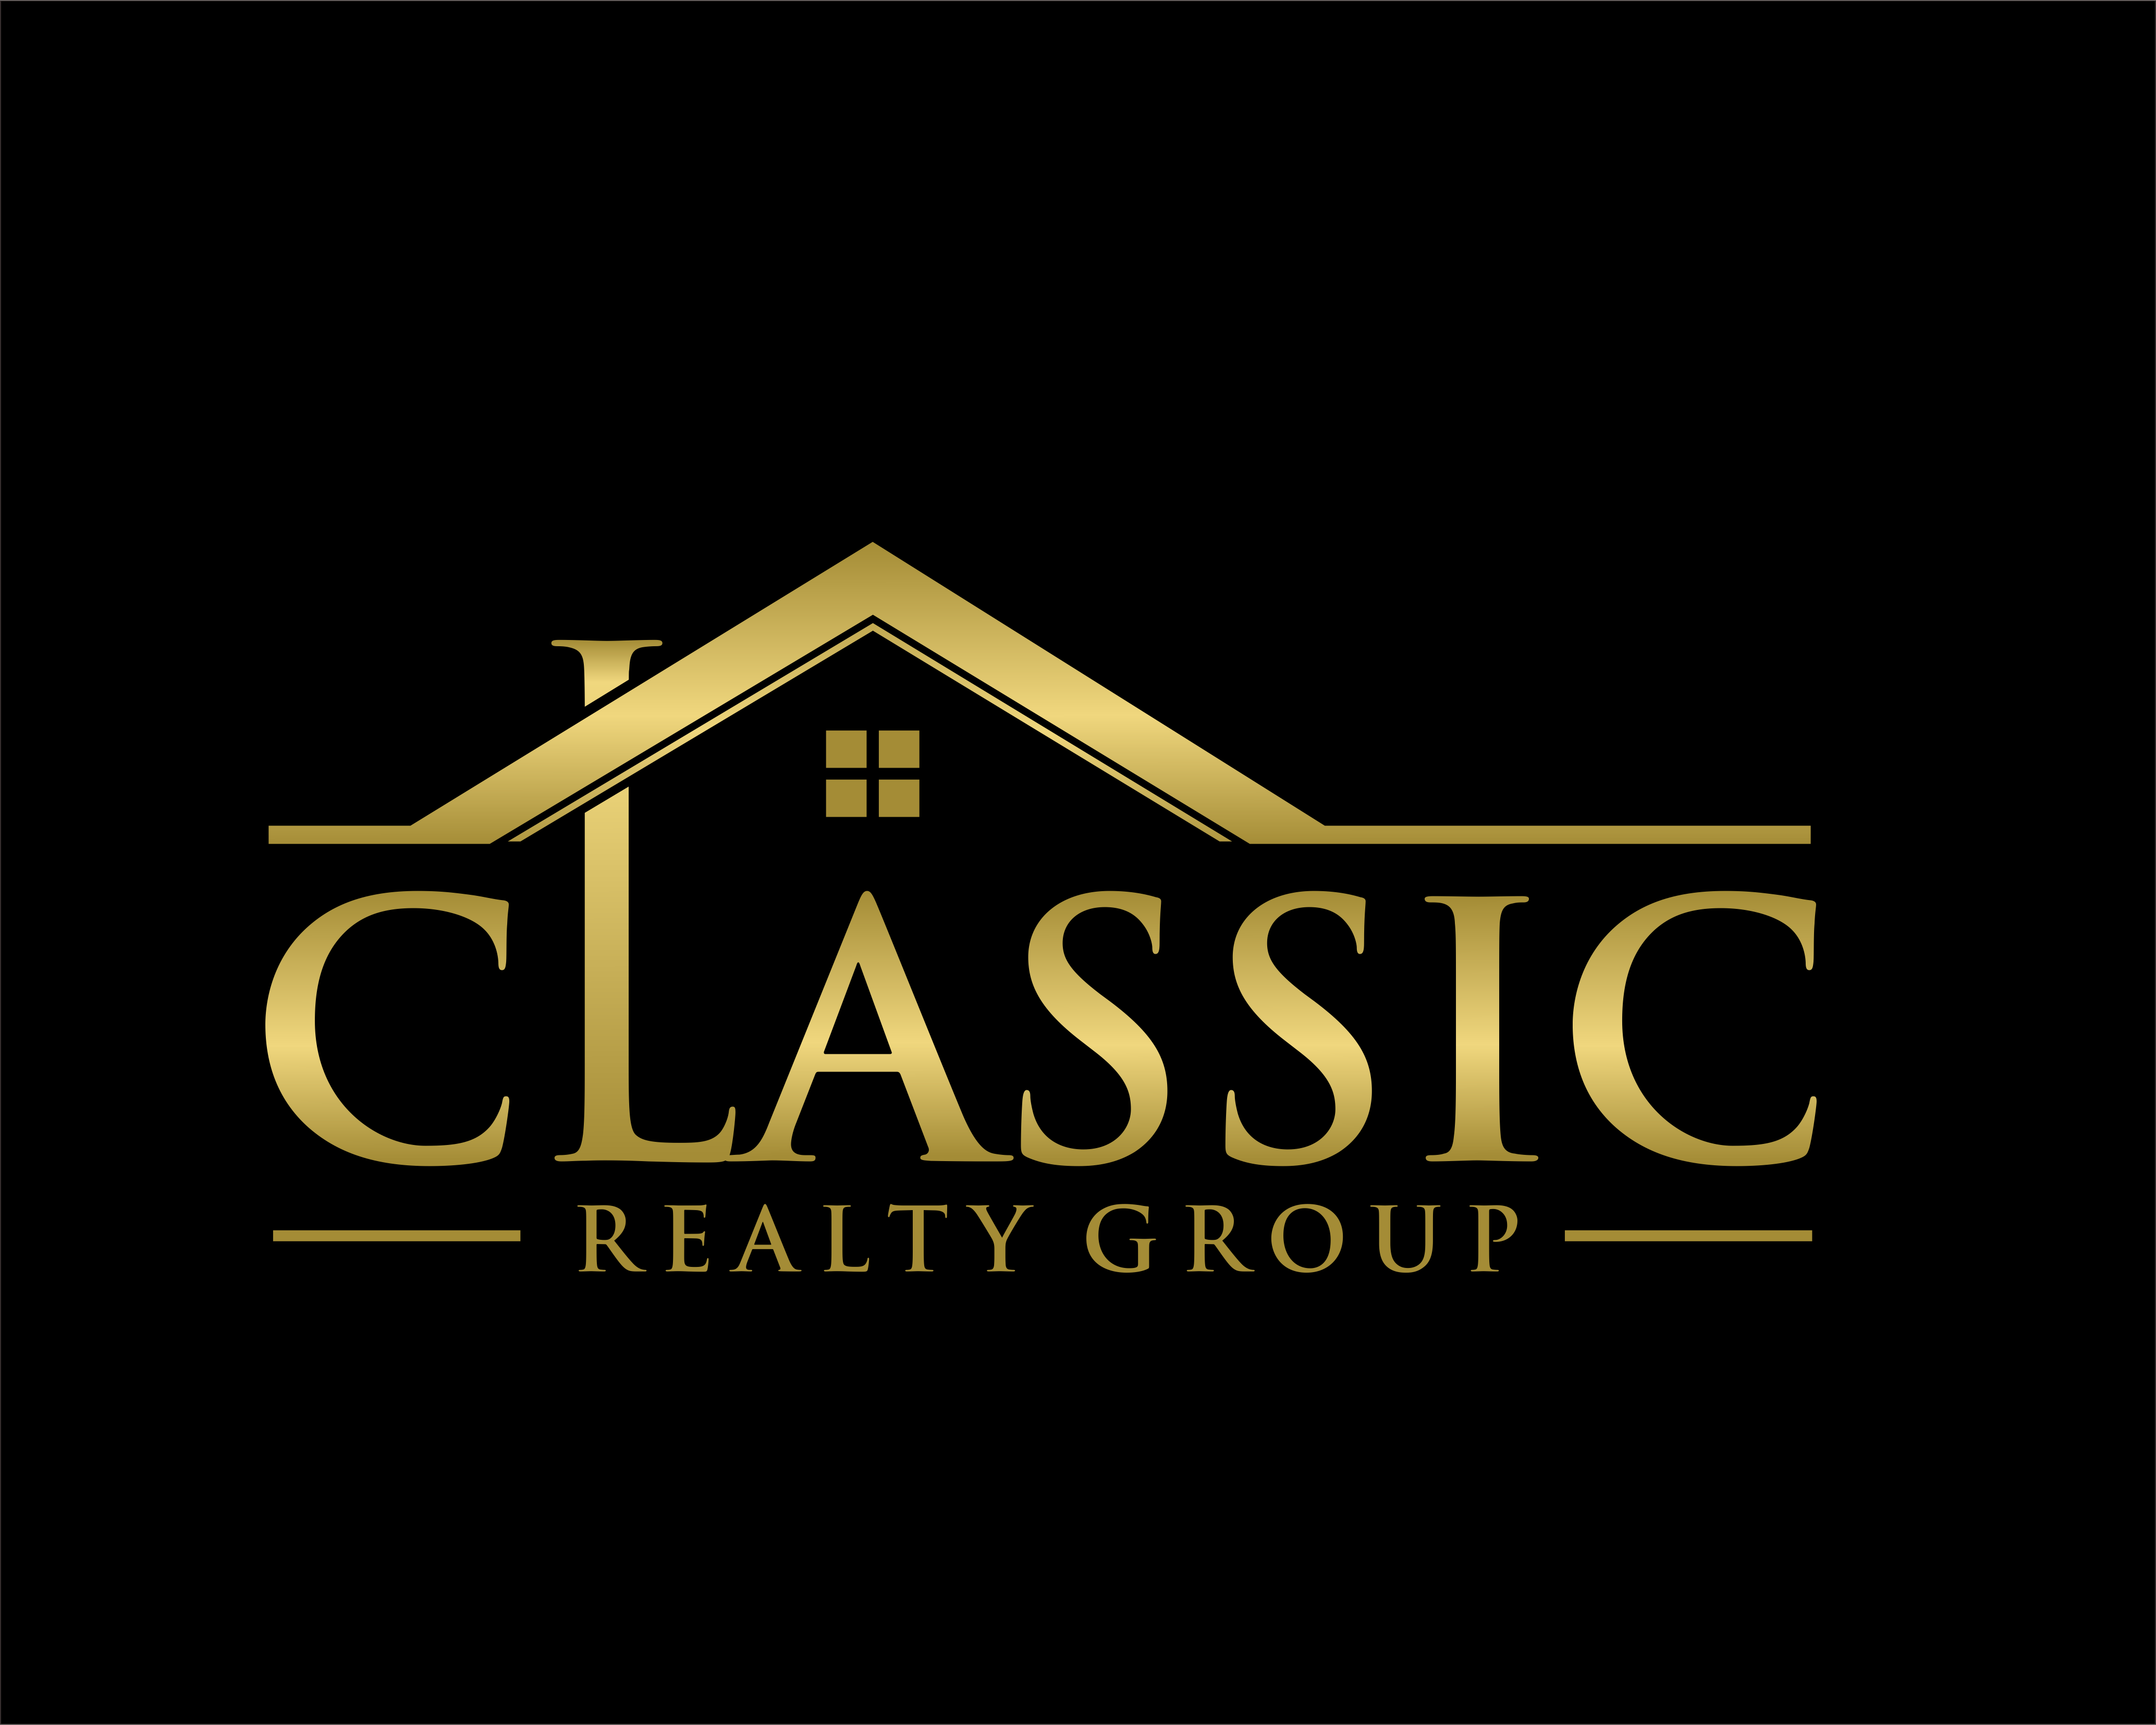 Gold Gradient Logo for Real Estate Company realestate